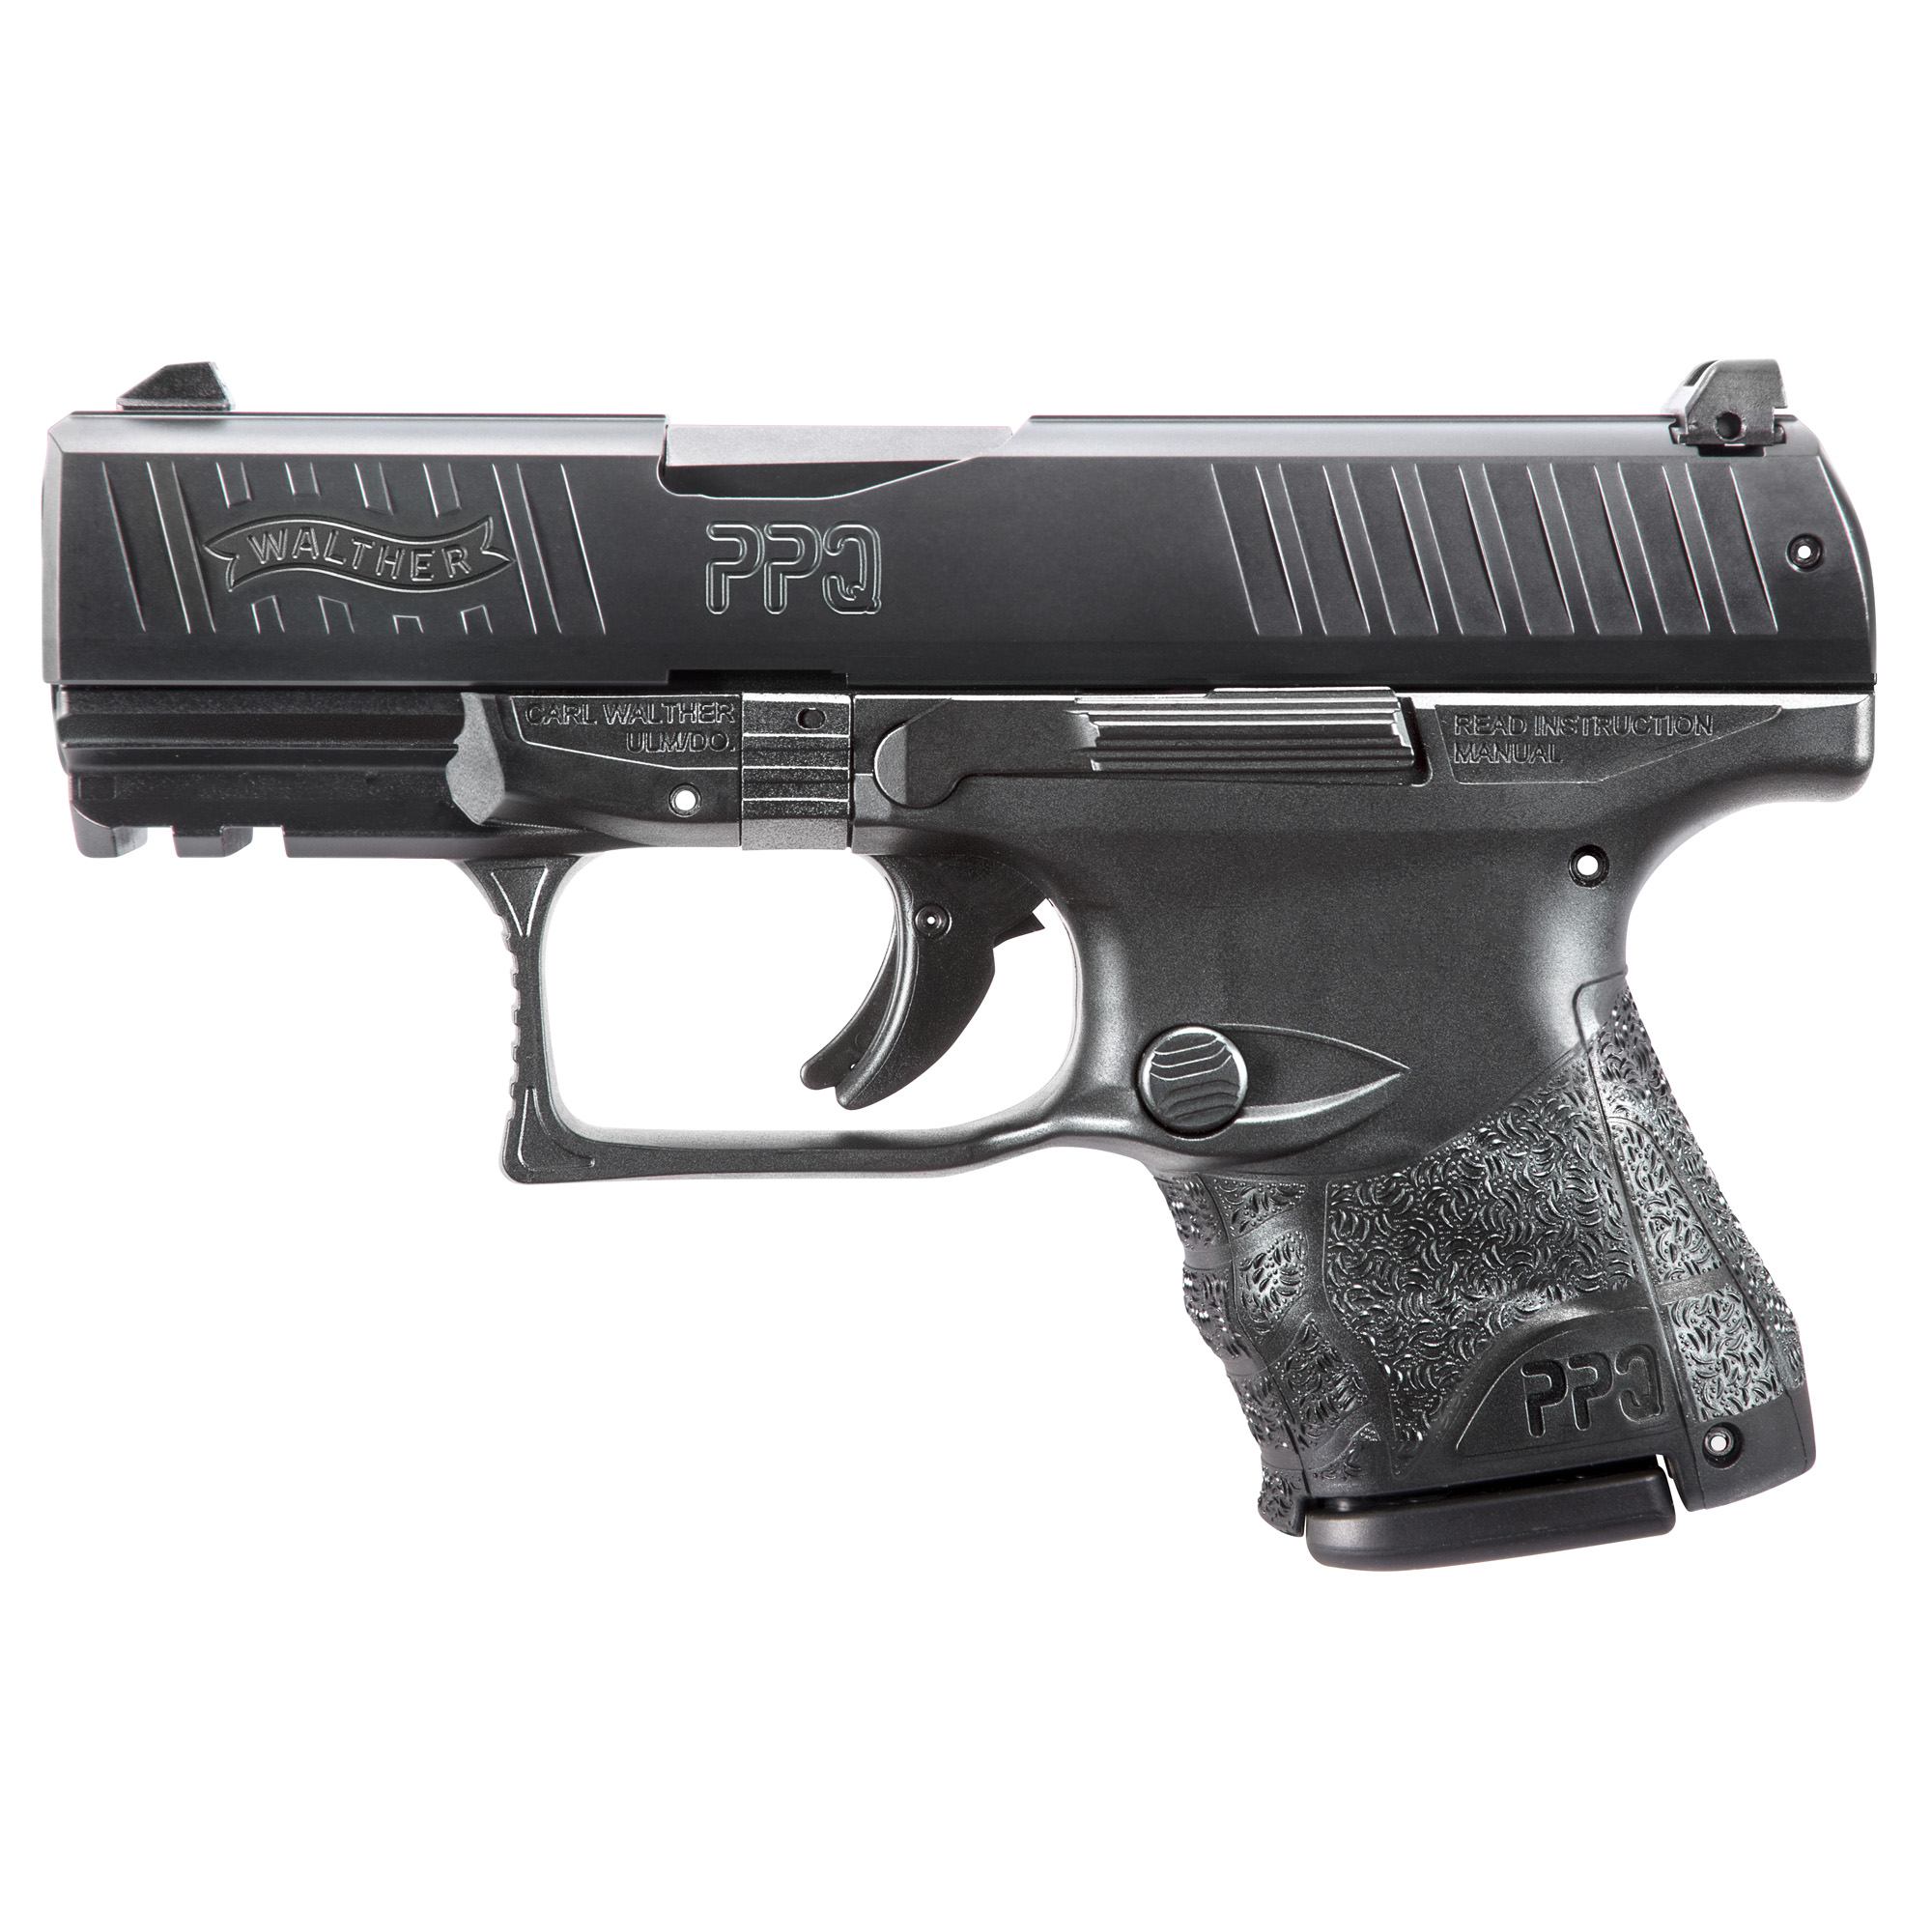 """The PPQ M2 is a true breakthrough in ergonomics for self-defense handguns. The sculpted grip meshes smoothly into the hand. The trigger is the finest ever on a polymer"""" striker-fired handgun. The styling is elegant and trim. What's more"""" the PPQ M2 has been updated with a new traditional reversible mag release button."""